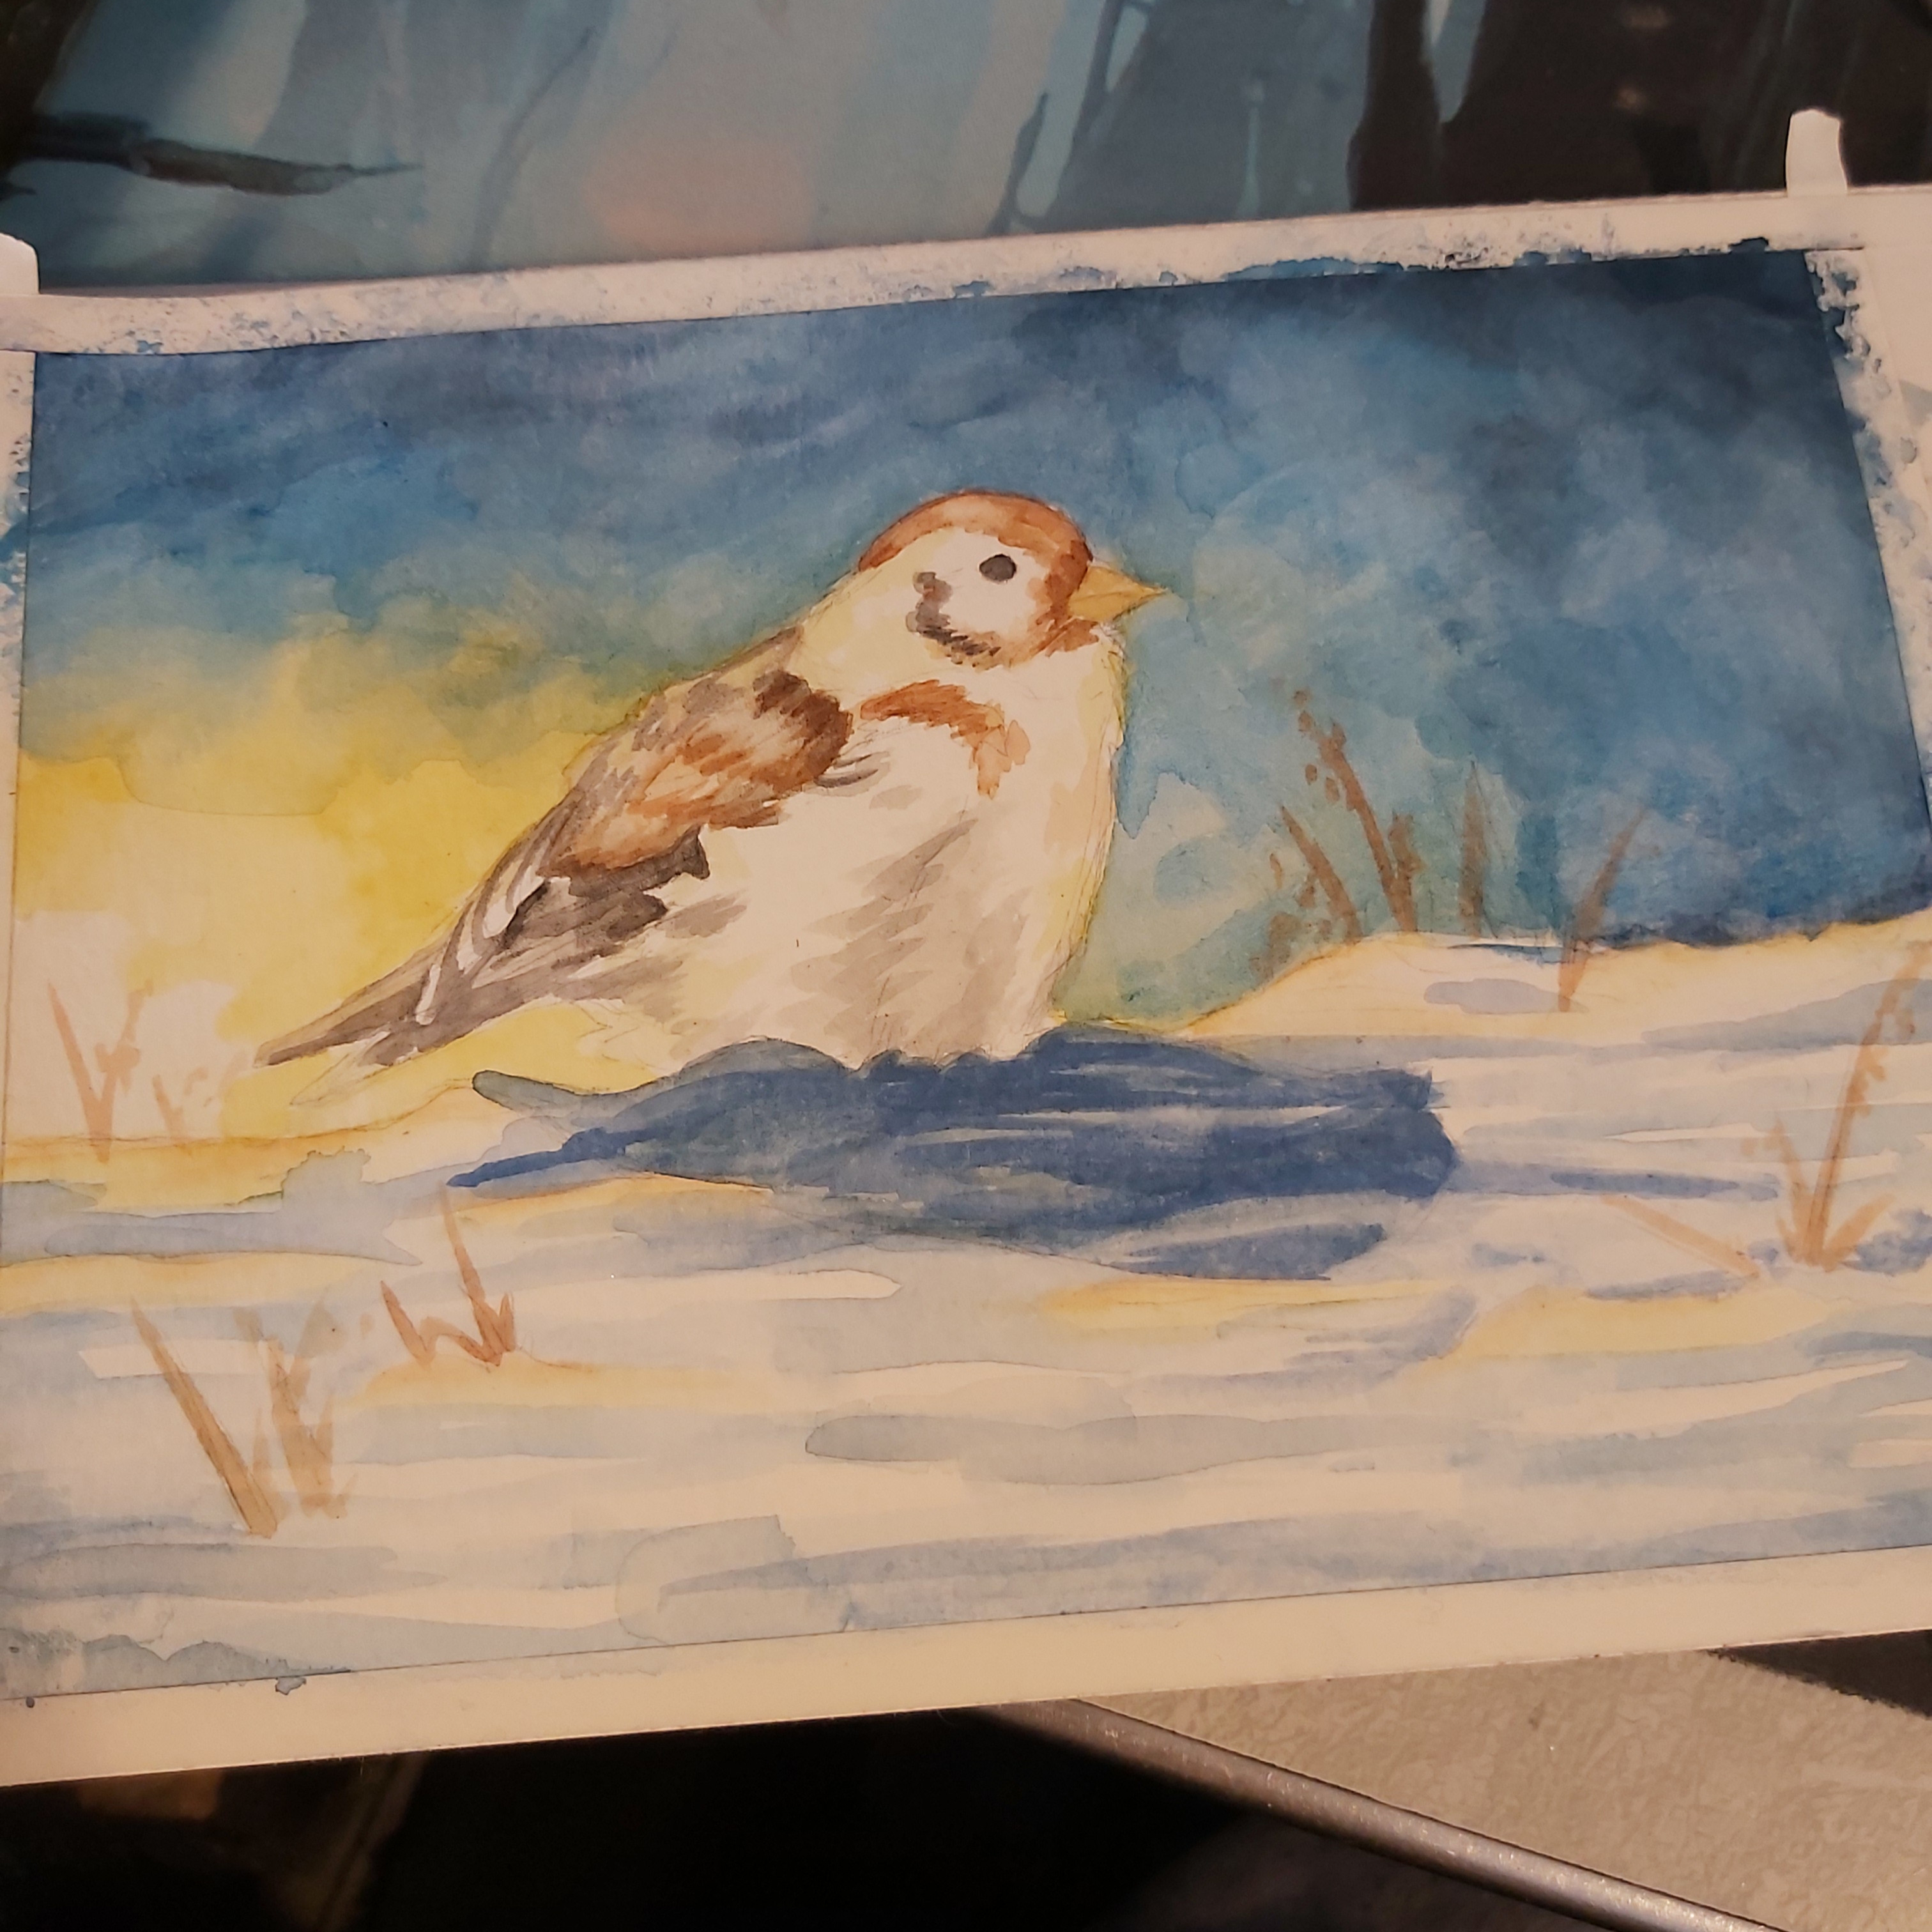 Few layers of watercolor